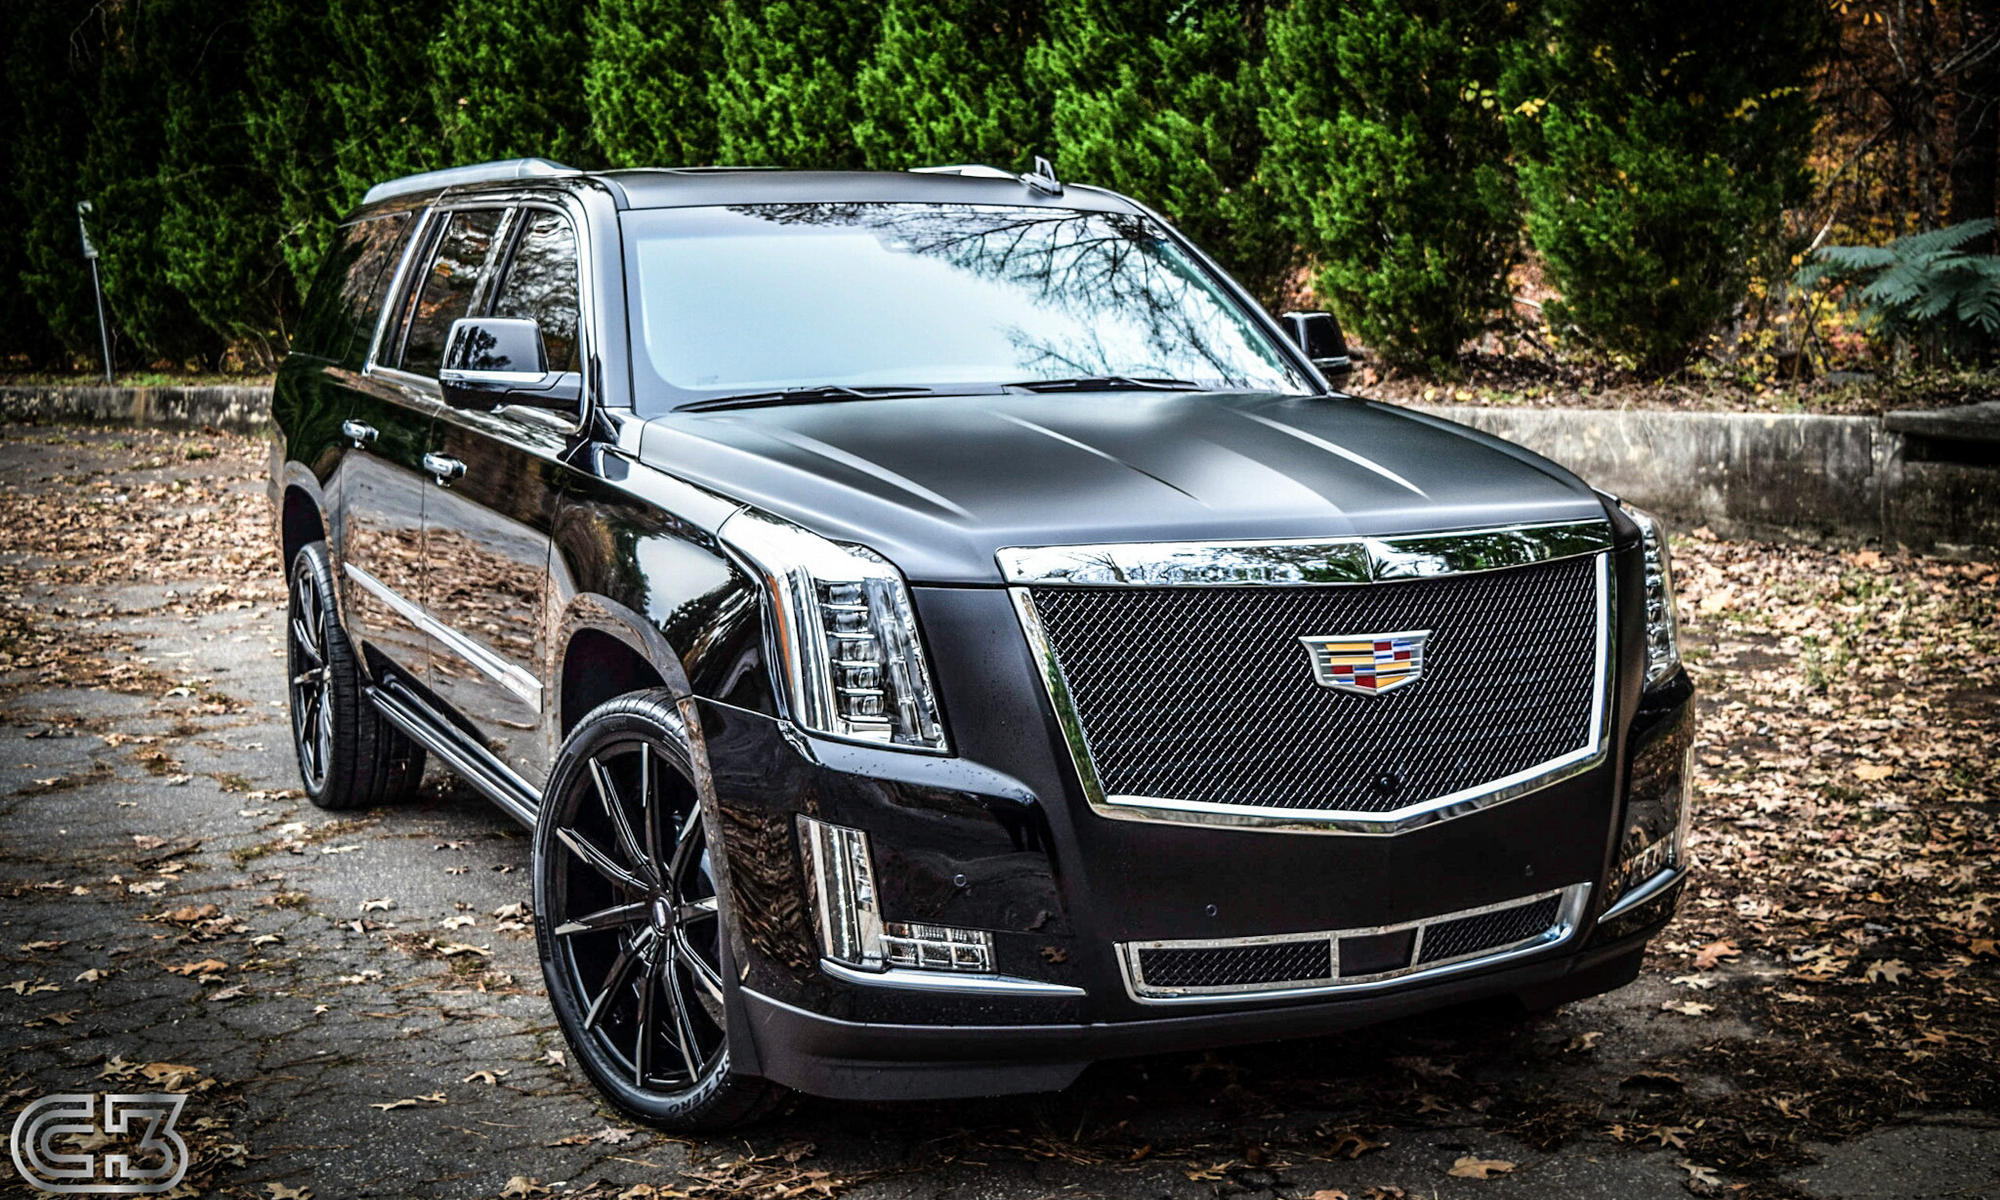 2015 Cadillac Escalade on CSS-15